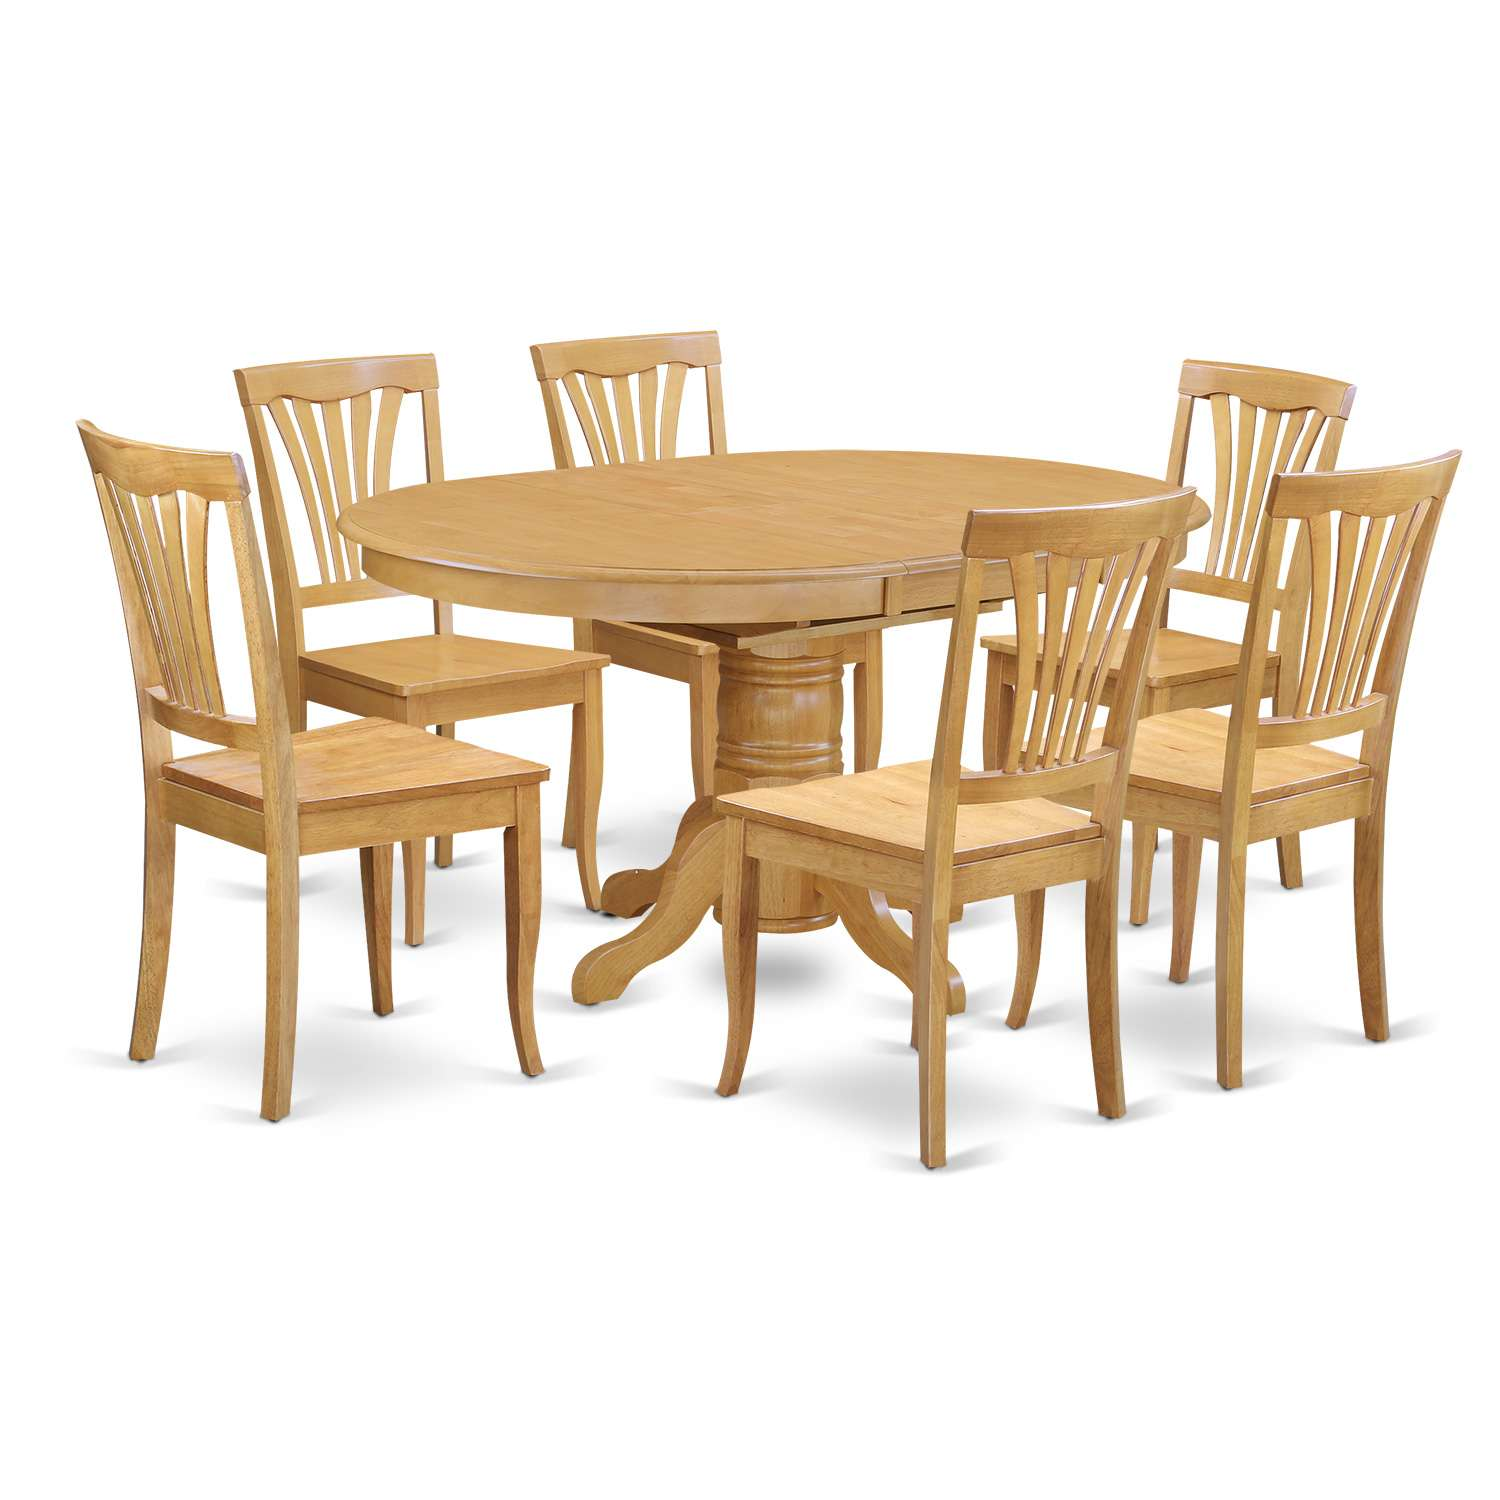 Oak Oval Dining Room Table And Chairs